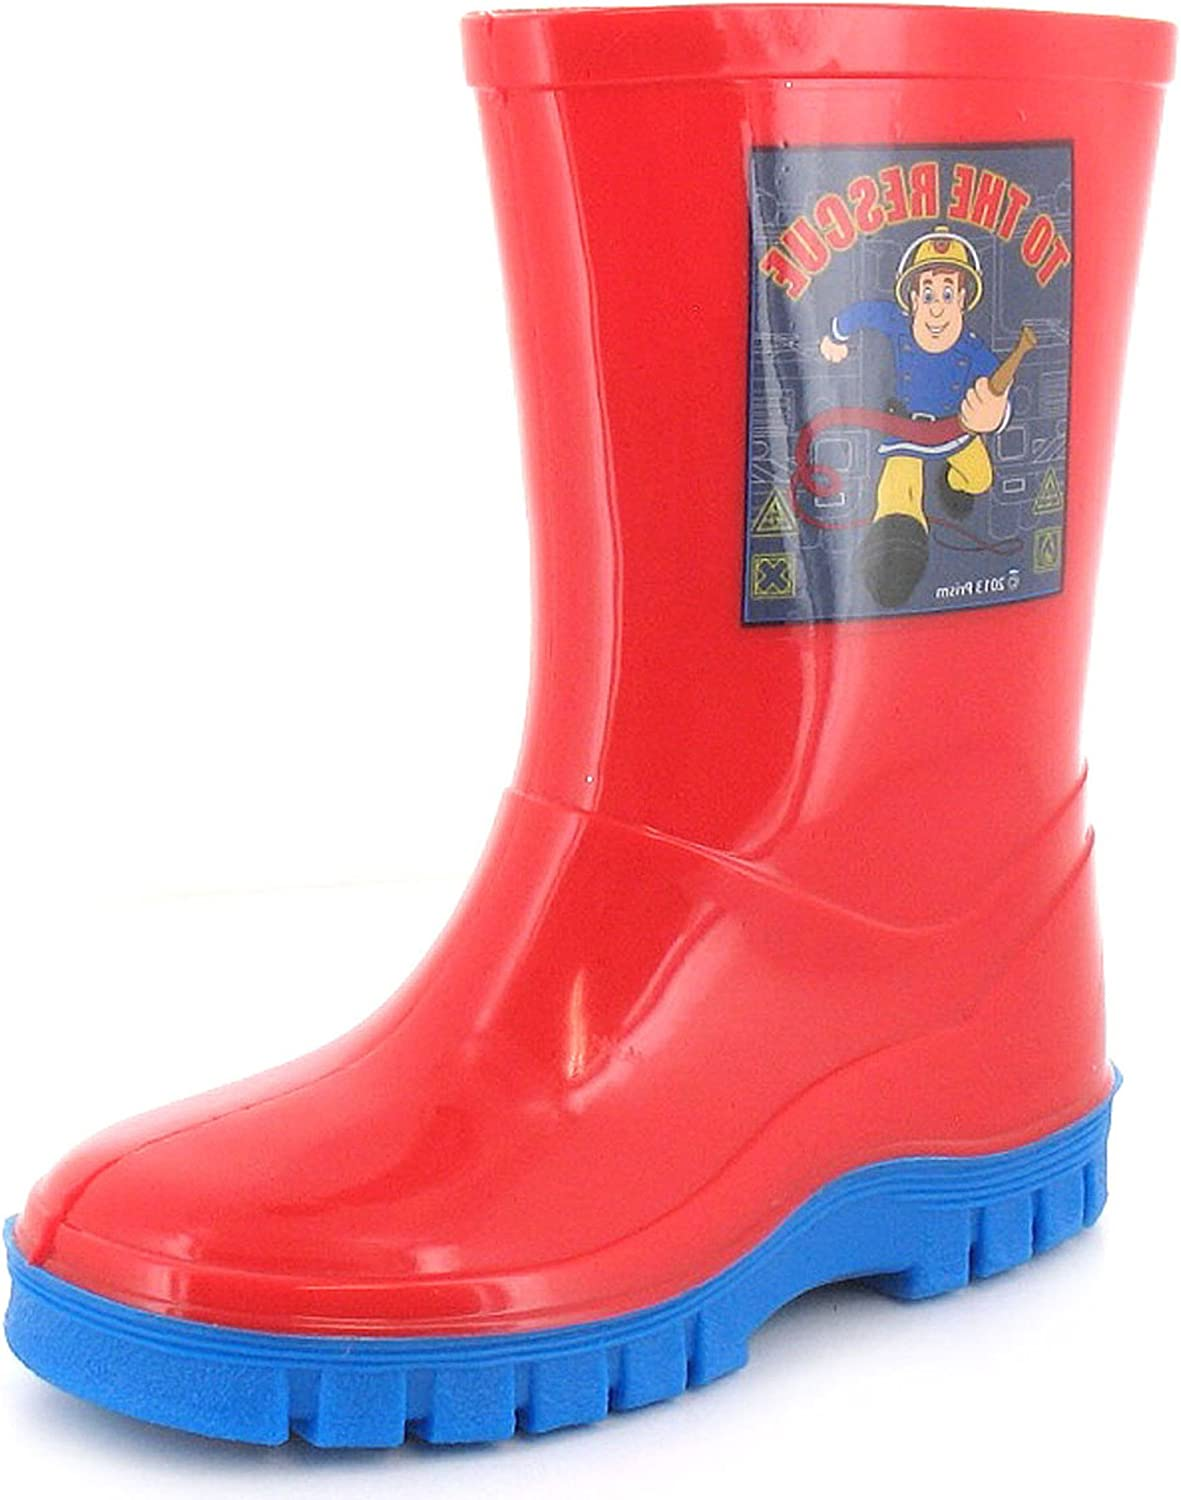 Fireman Sam BoysChildrens Red Wellington Boots with Blue Soles. Red UK Sizes 4 10